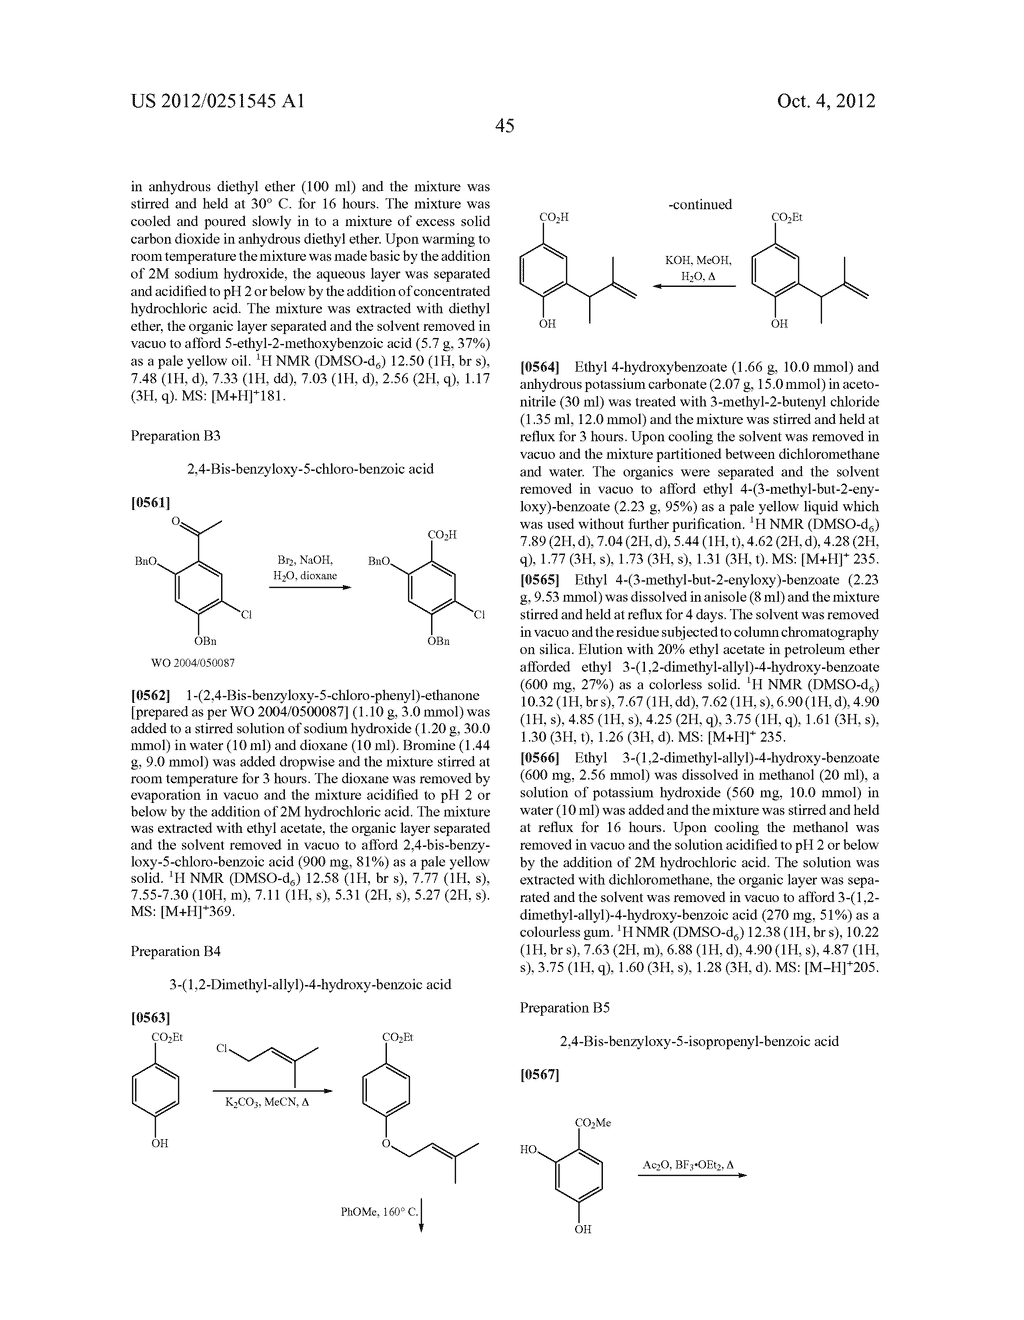 Therapeutic Combinations Of Hydroxybenzamide Derivatives As Inhibitors Of     HSP90 - diagram, schematic, and image 46